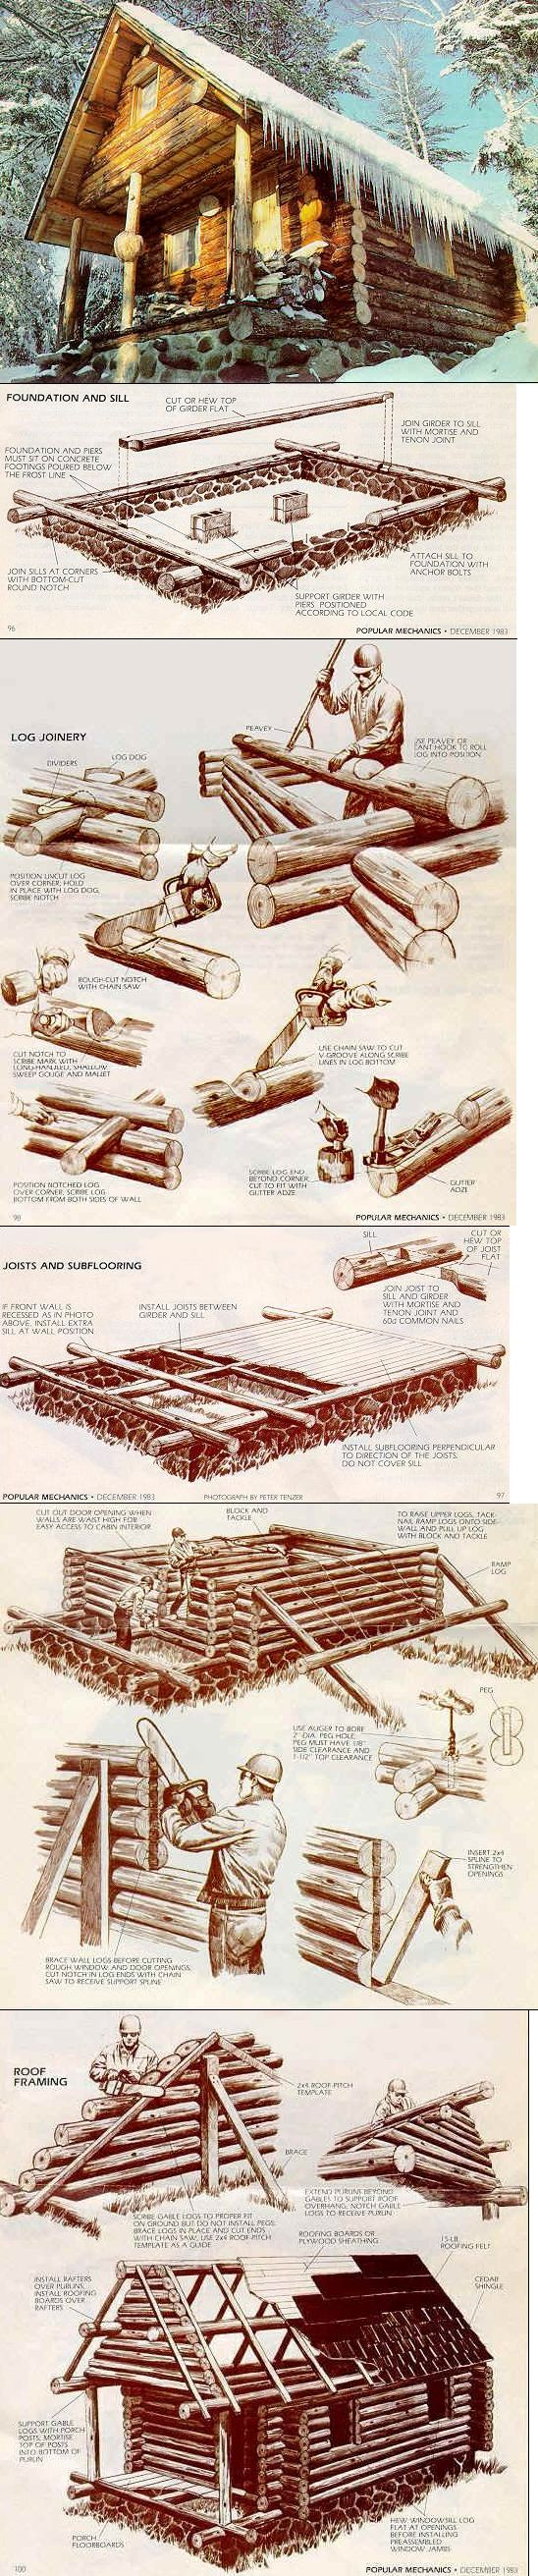 How to build a log cabin //